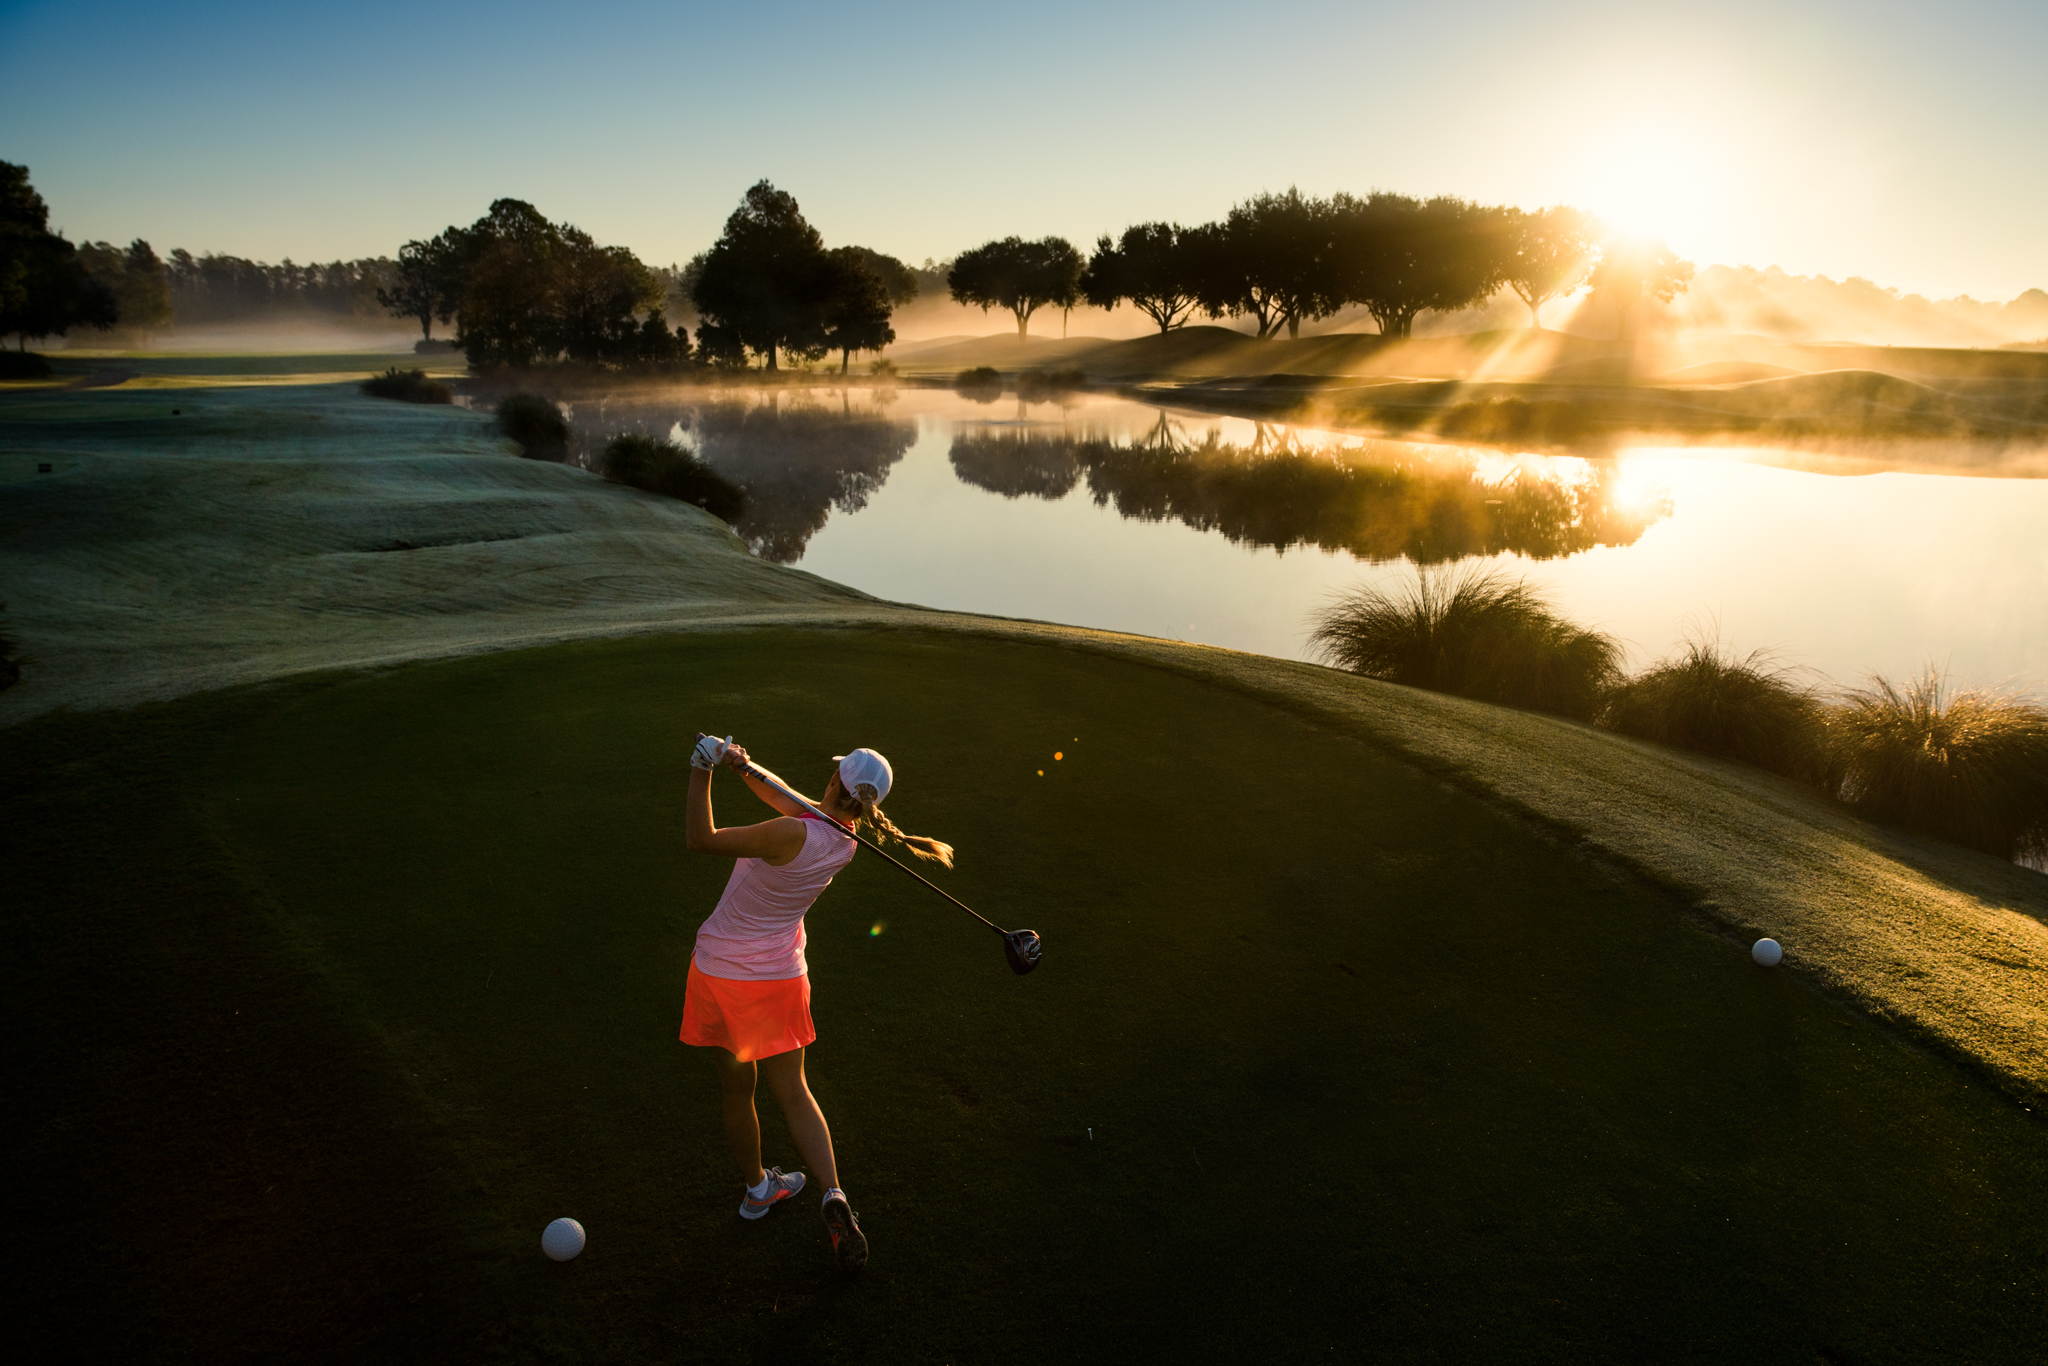 2016 Dick's Sporting Goods golf catalog shoot, Grand Cypress, Orlando, Florida.  Sony A7rII, Leica 35mm f1.4 Summilux-M.